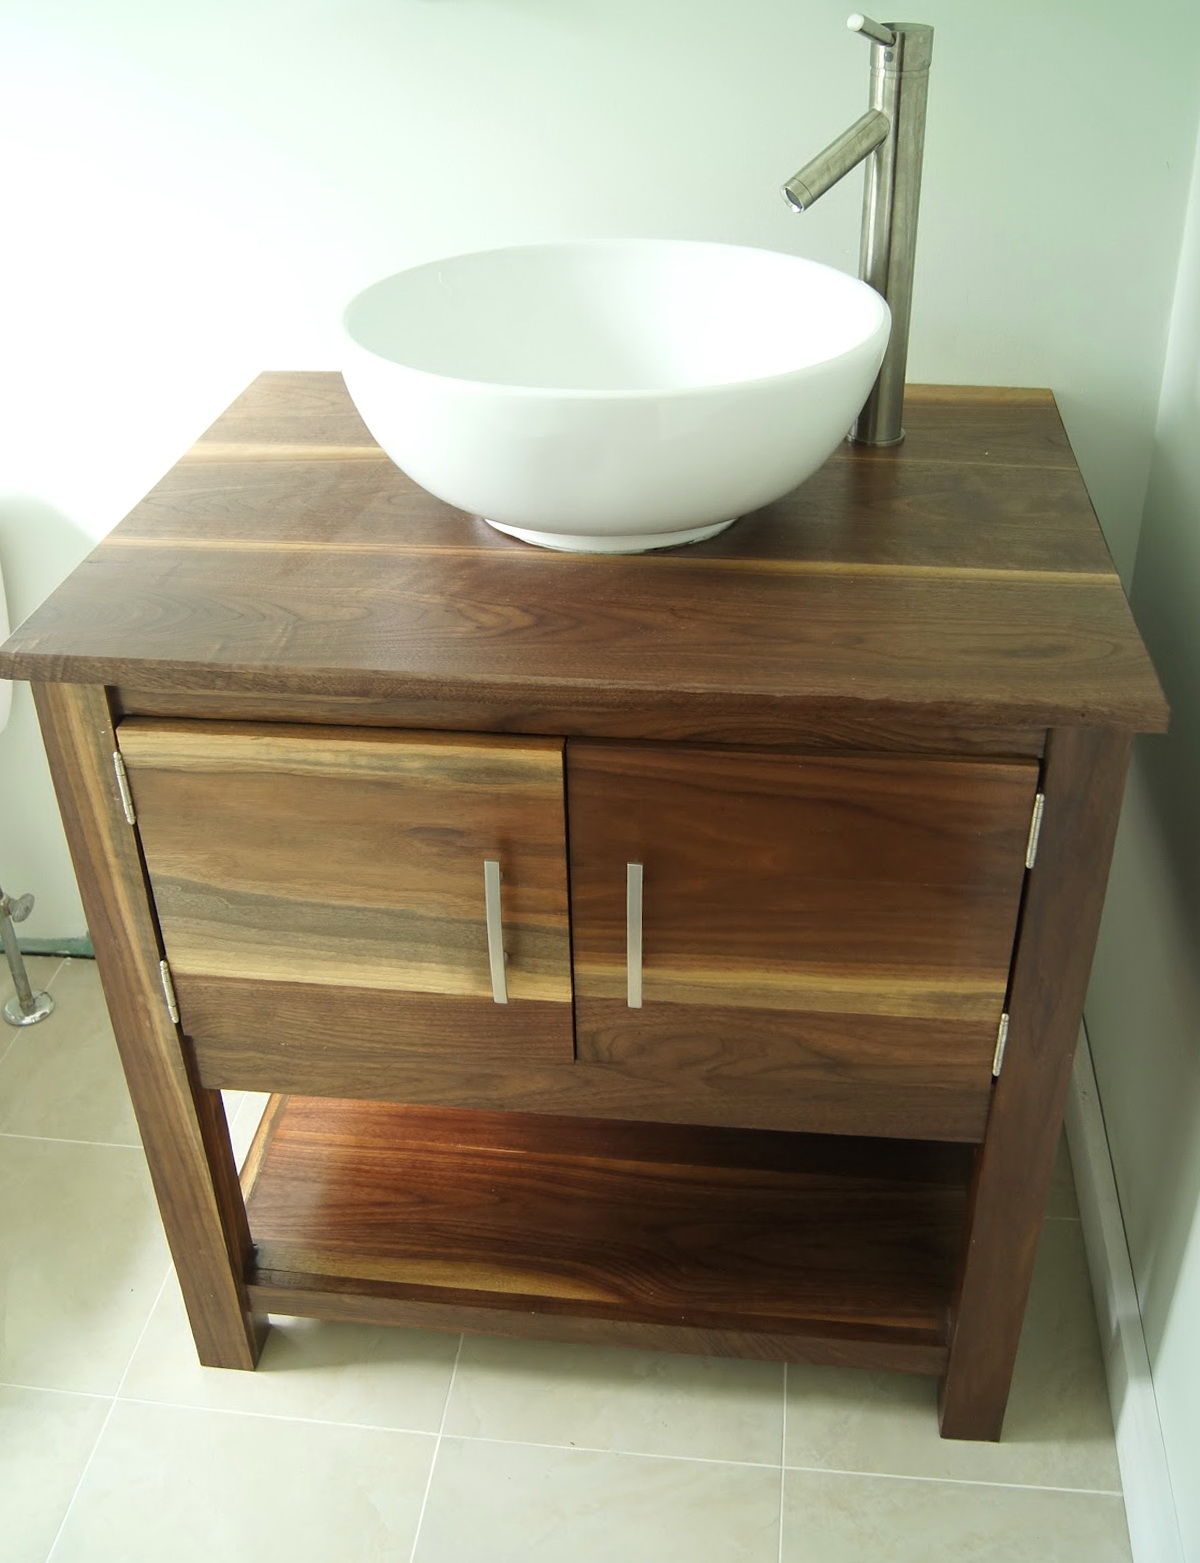 Bathroom Cabinet Ideas Diy